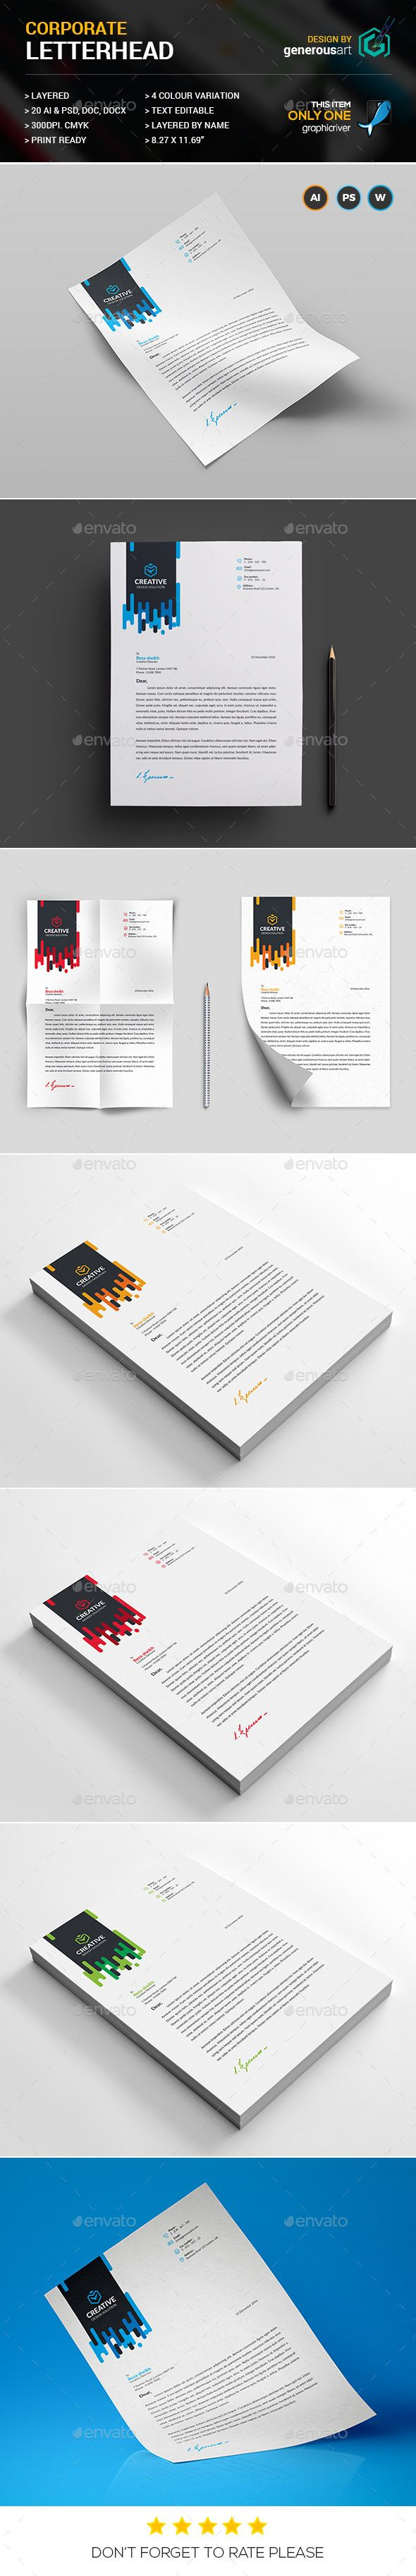 80 best letterhead design templates images on pinterest contact letterhead template spiritdancerdesigns Gallery